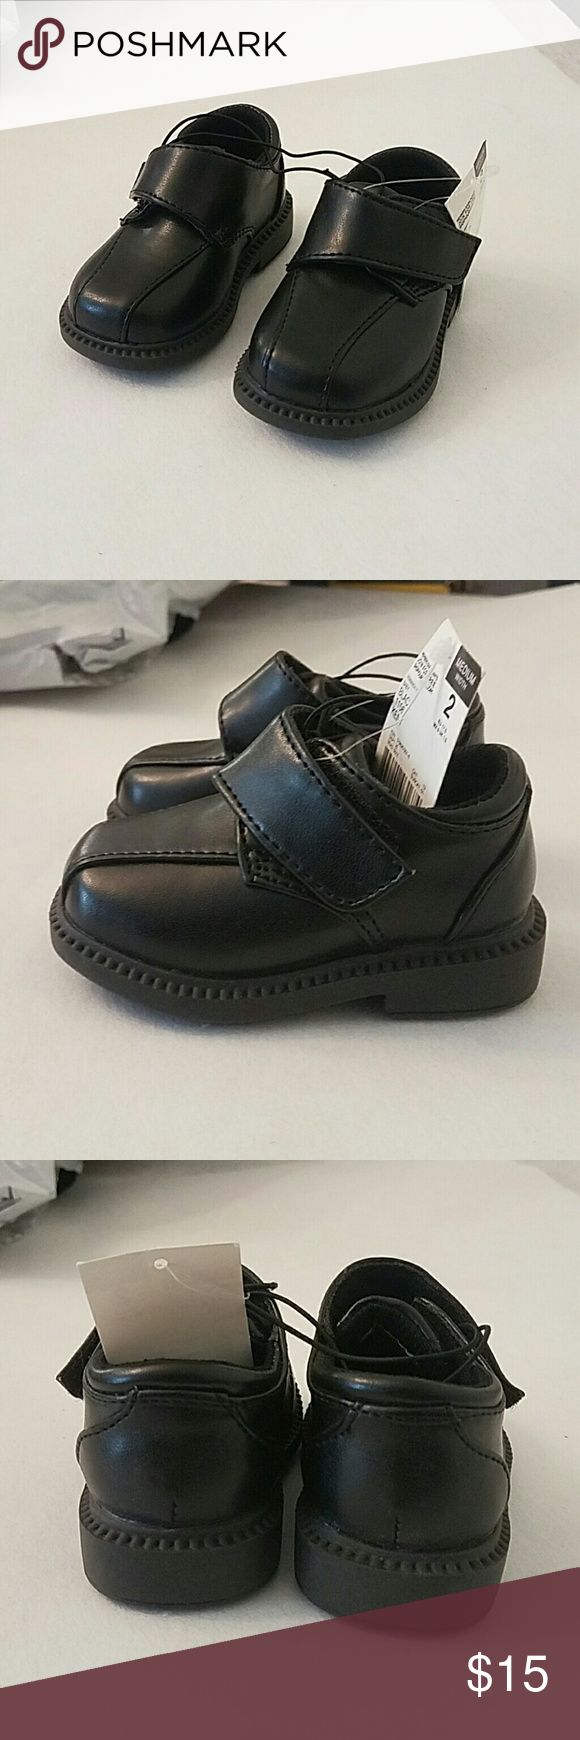 NWT Toddler Boys Black Velcro Dress Shoes Size 2 These shoes were never worn. Were brought for my child but forgot about them. Have a velcro strap for a secure fit. They are the medium width. No scuffs or wear marks. Perfect for this up coming holiday season! A toddler size 2. Tags: toddler baby kids boys dress shoes black velcro Route 66 Shoes Dress Shoes